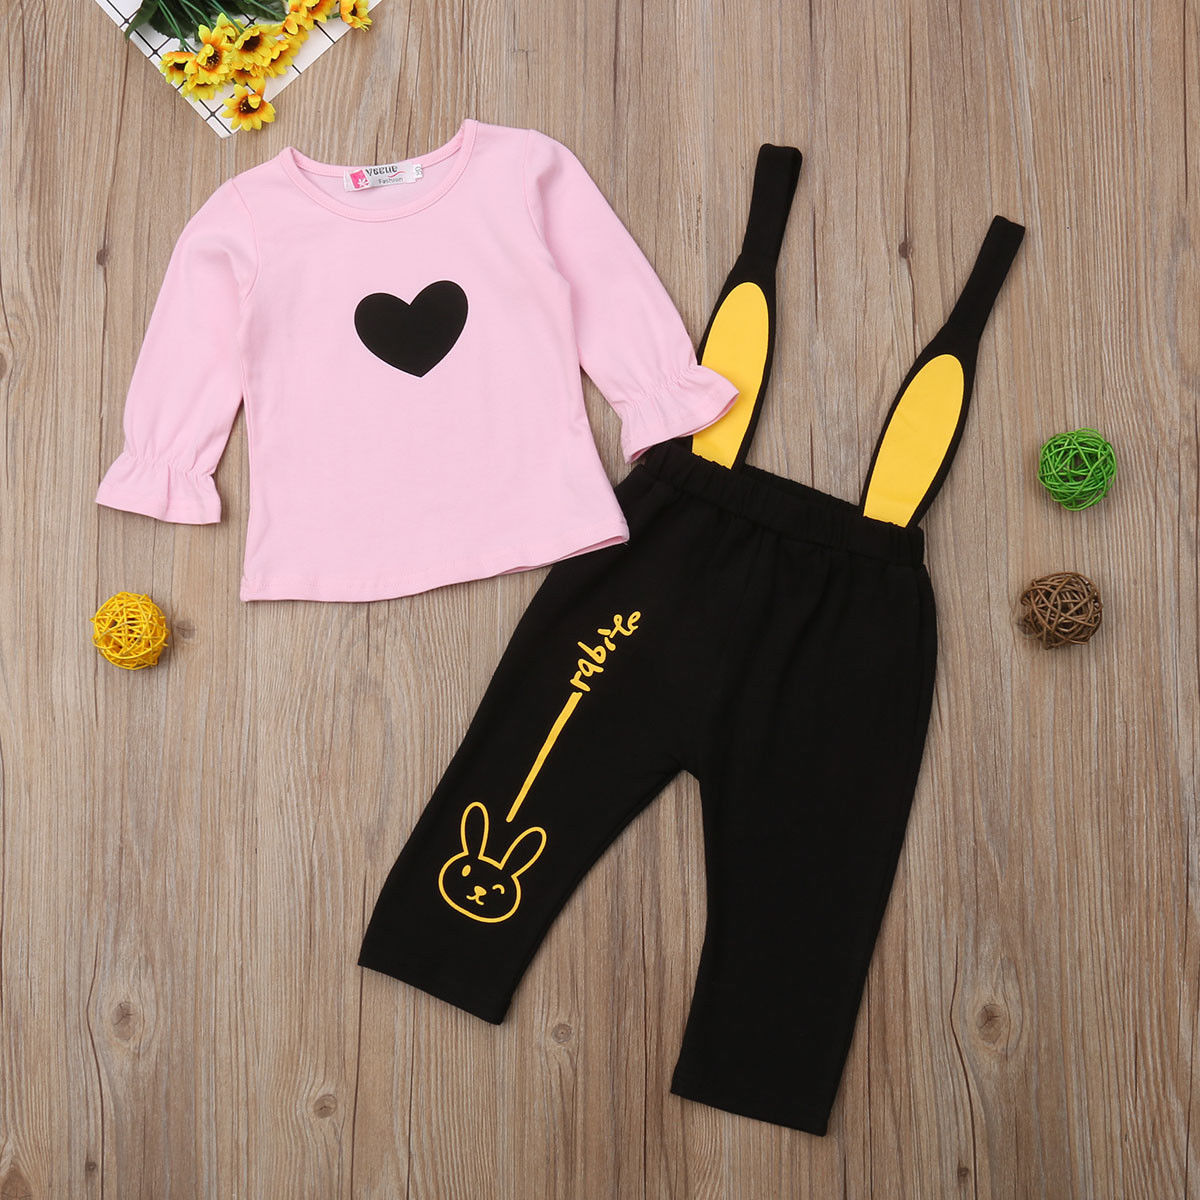 Toddler Baby Girls Long Sleeve T Shirt Heart Print Tops Bib Rabbit Pants Leggings Outfits Clothes Set 2019 2019 in Clothing Sets from Mother Kids